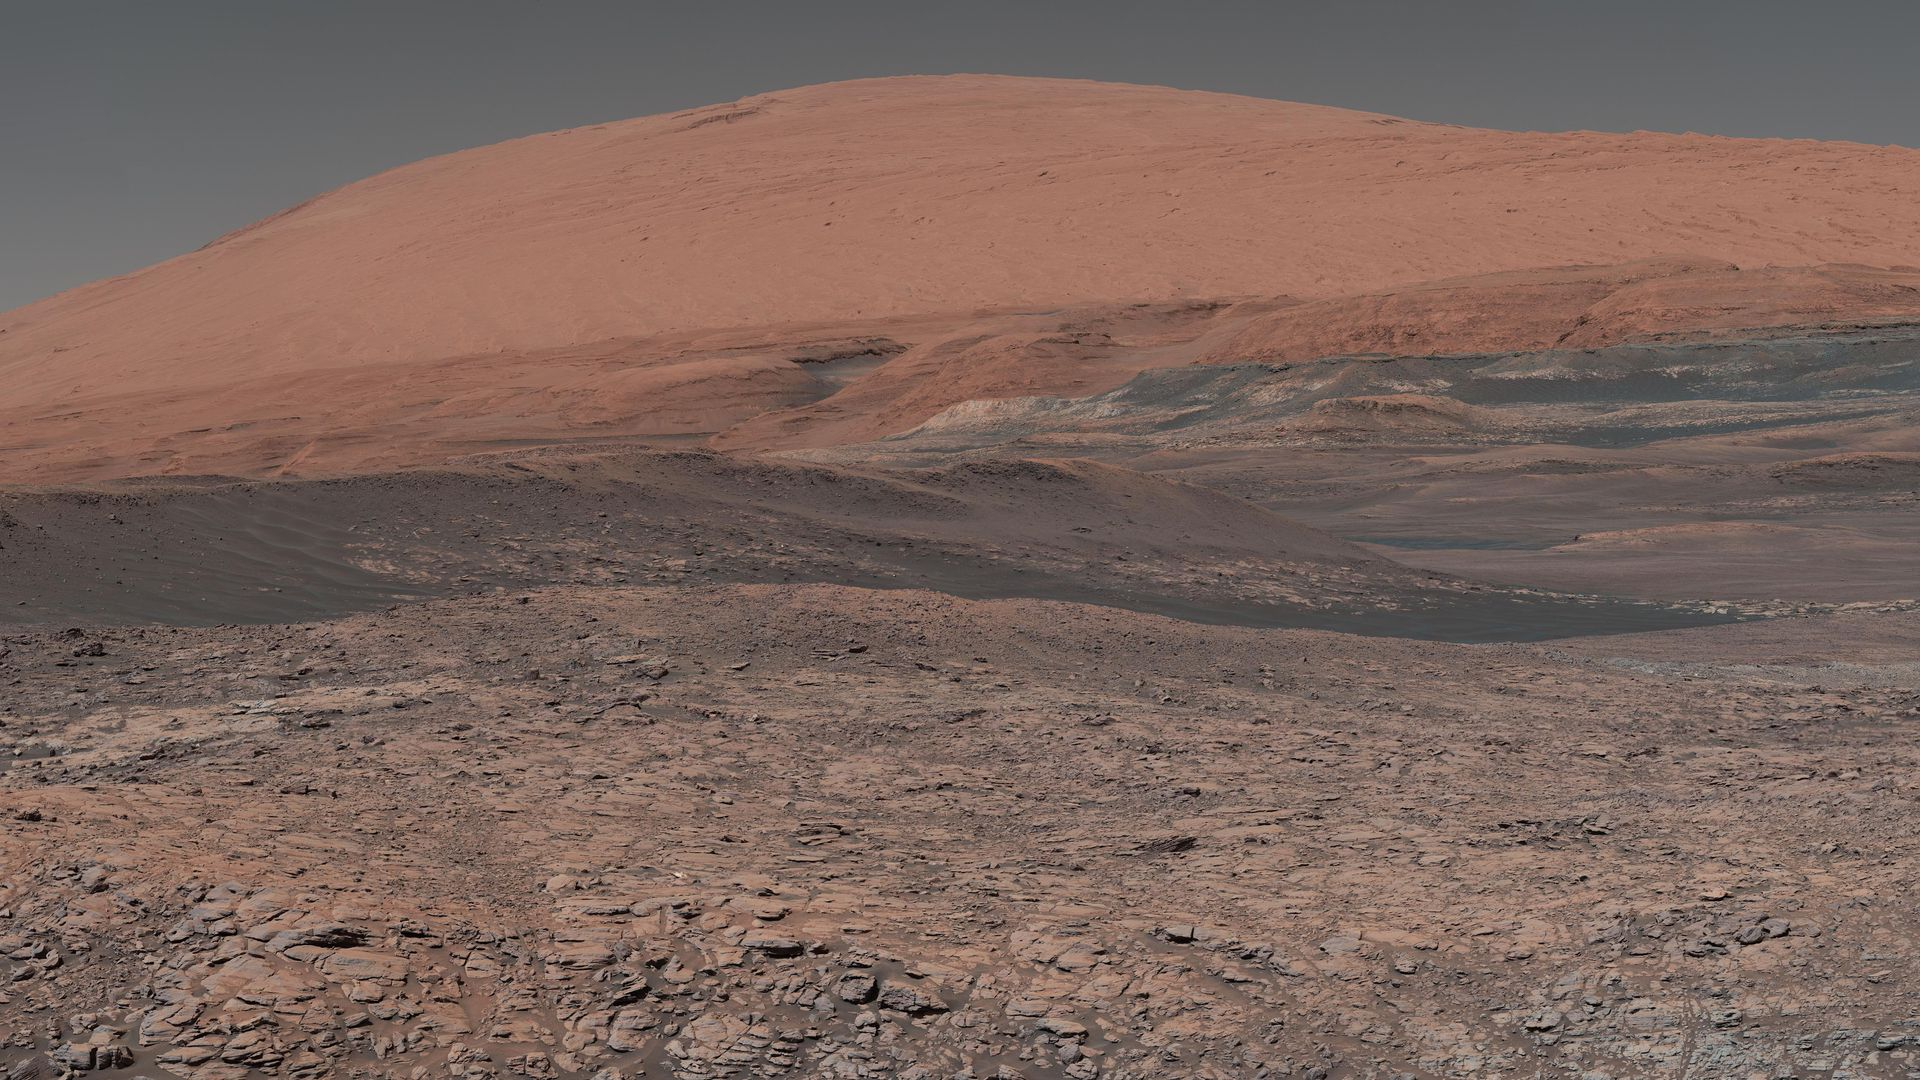 A mosaic image of Mars' Mount Sharp, taken by the Mars Curiosity rover in January 2018.